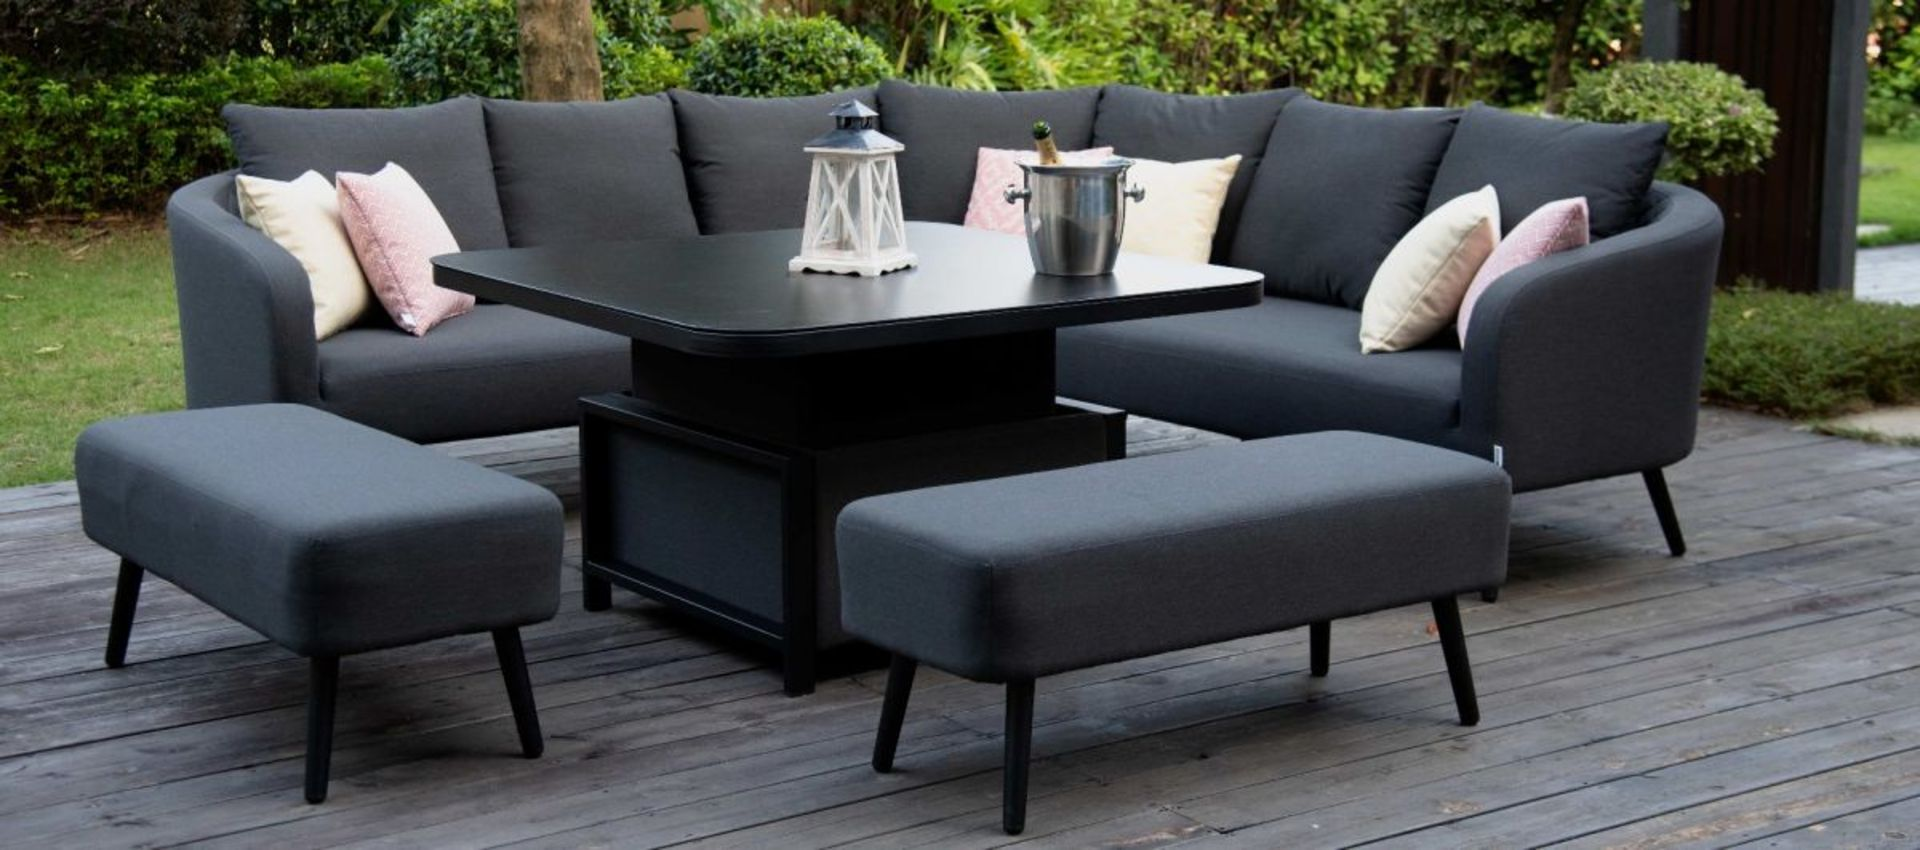 Lot 47 - Ambition Outdoor Square Dining Set With Rising Table (Charcoal) *BRAND NEW*